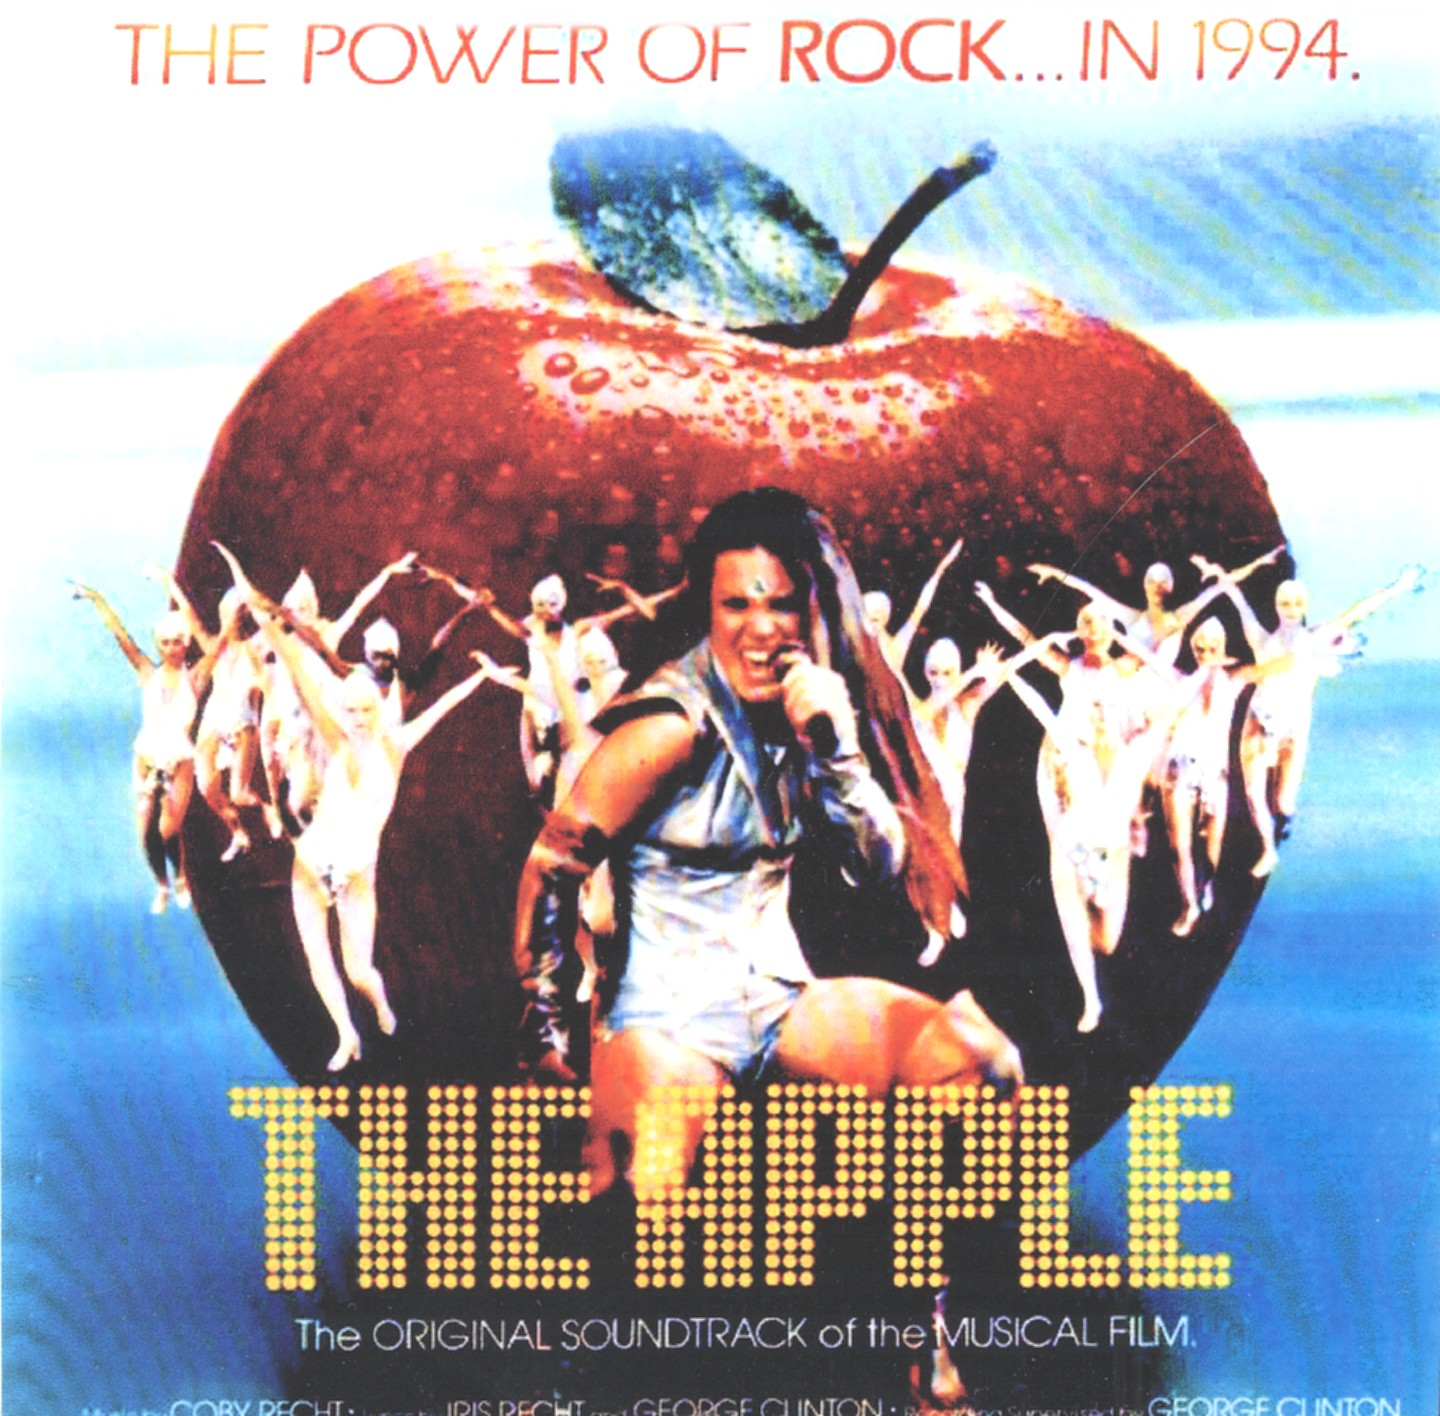 Original Soundtrack Recording - The Apple - 1980